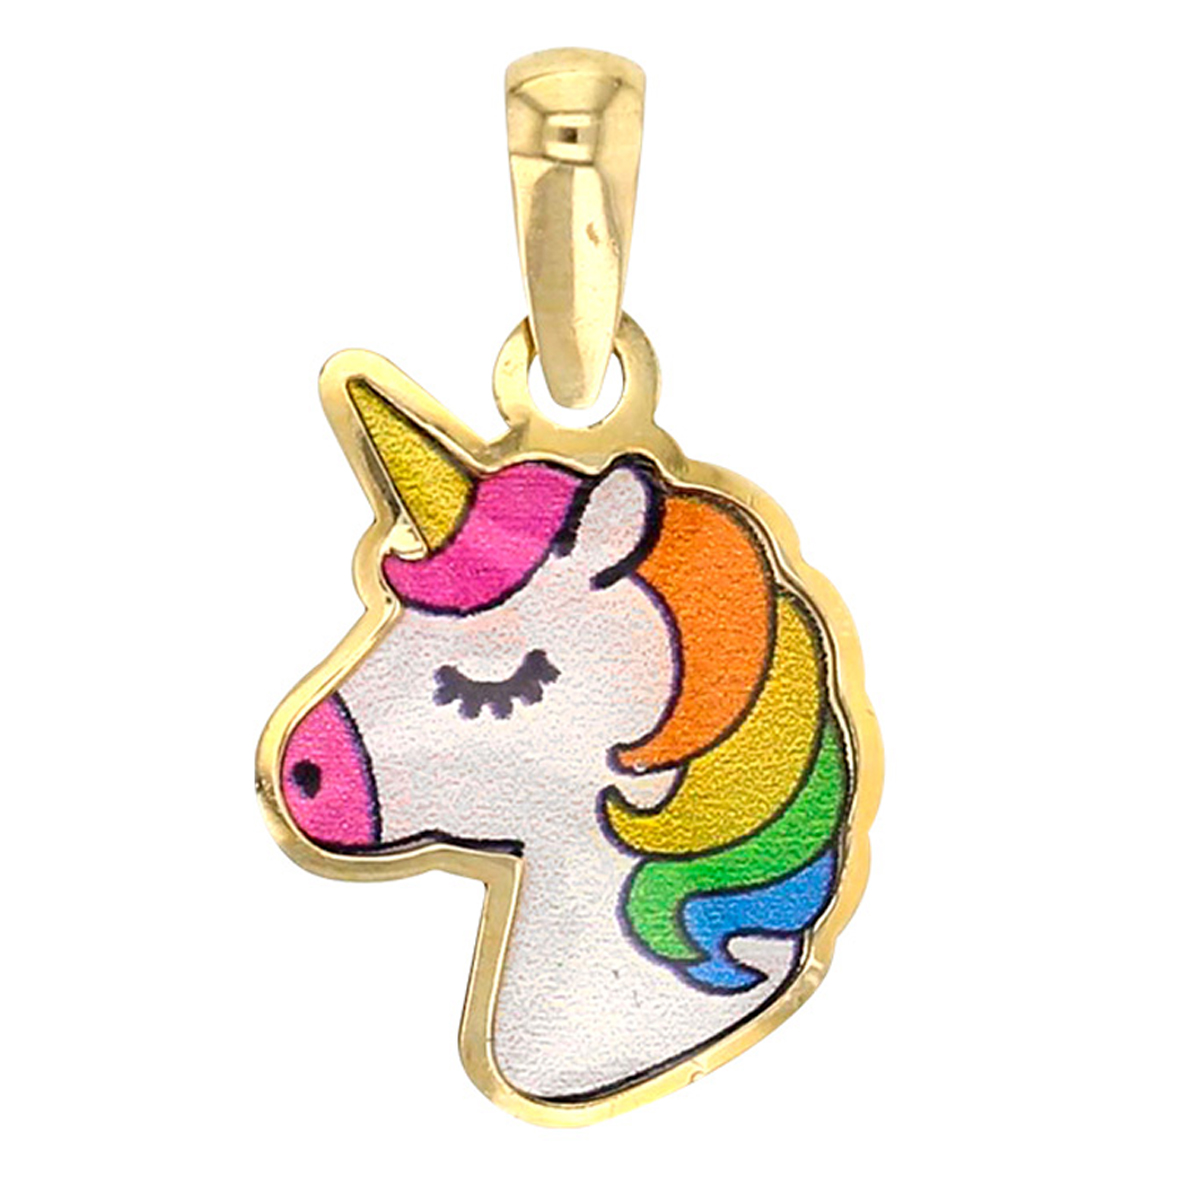 Pendentif \'Licorne My Unicorn\' multicolore doré (Or - 9 carats)  - [Q3344]